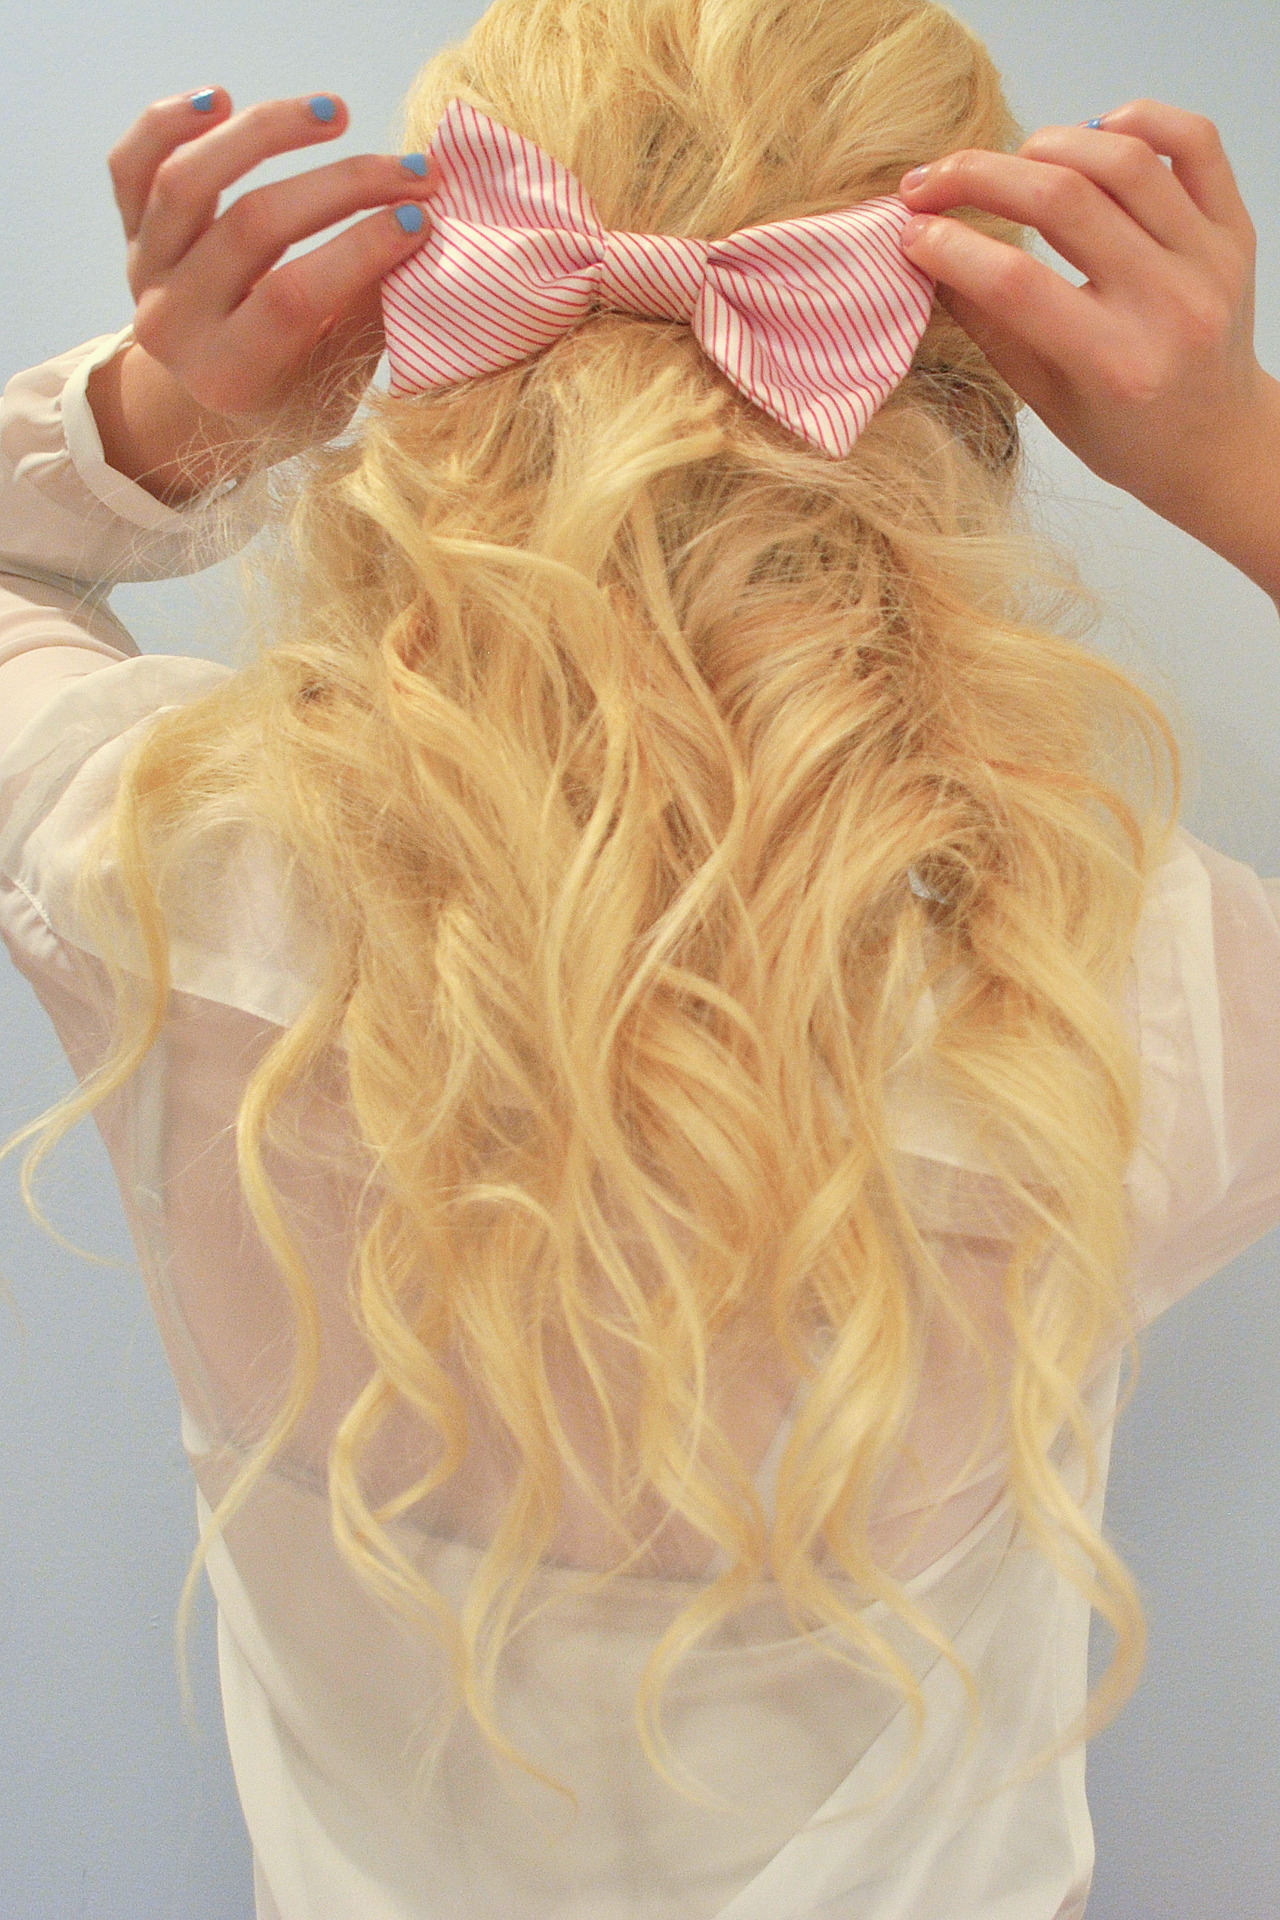 daughterofhungryghosts:  I like my hair today :)   I want this hair, not as yellow tho